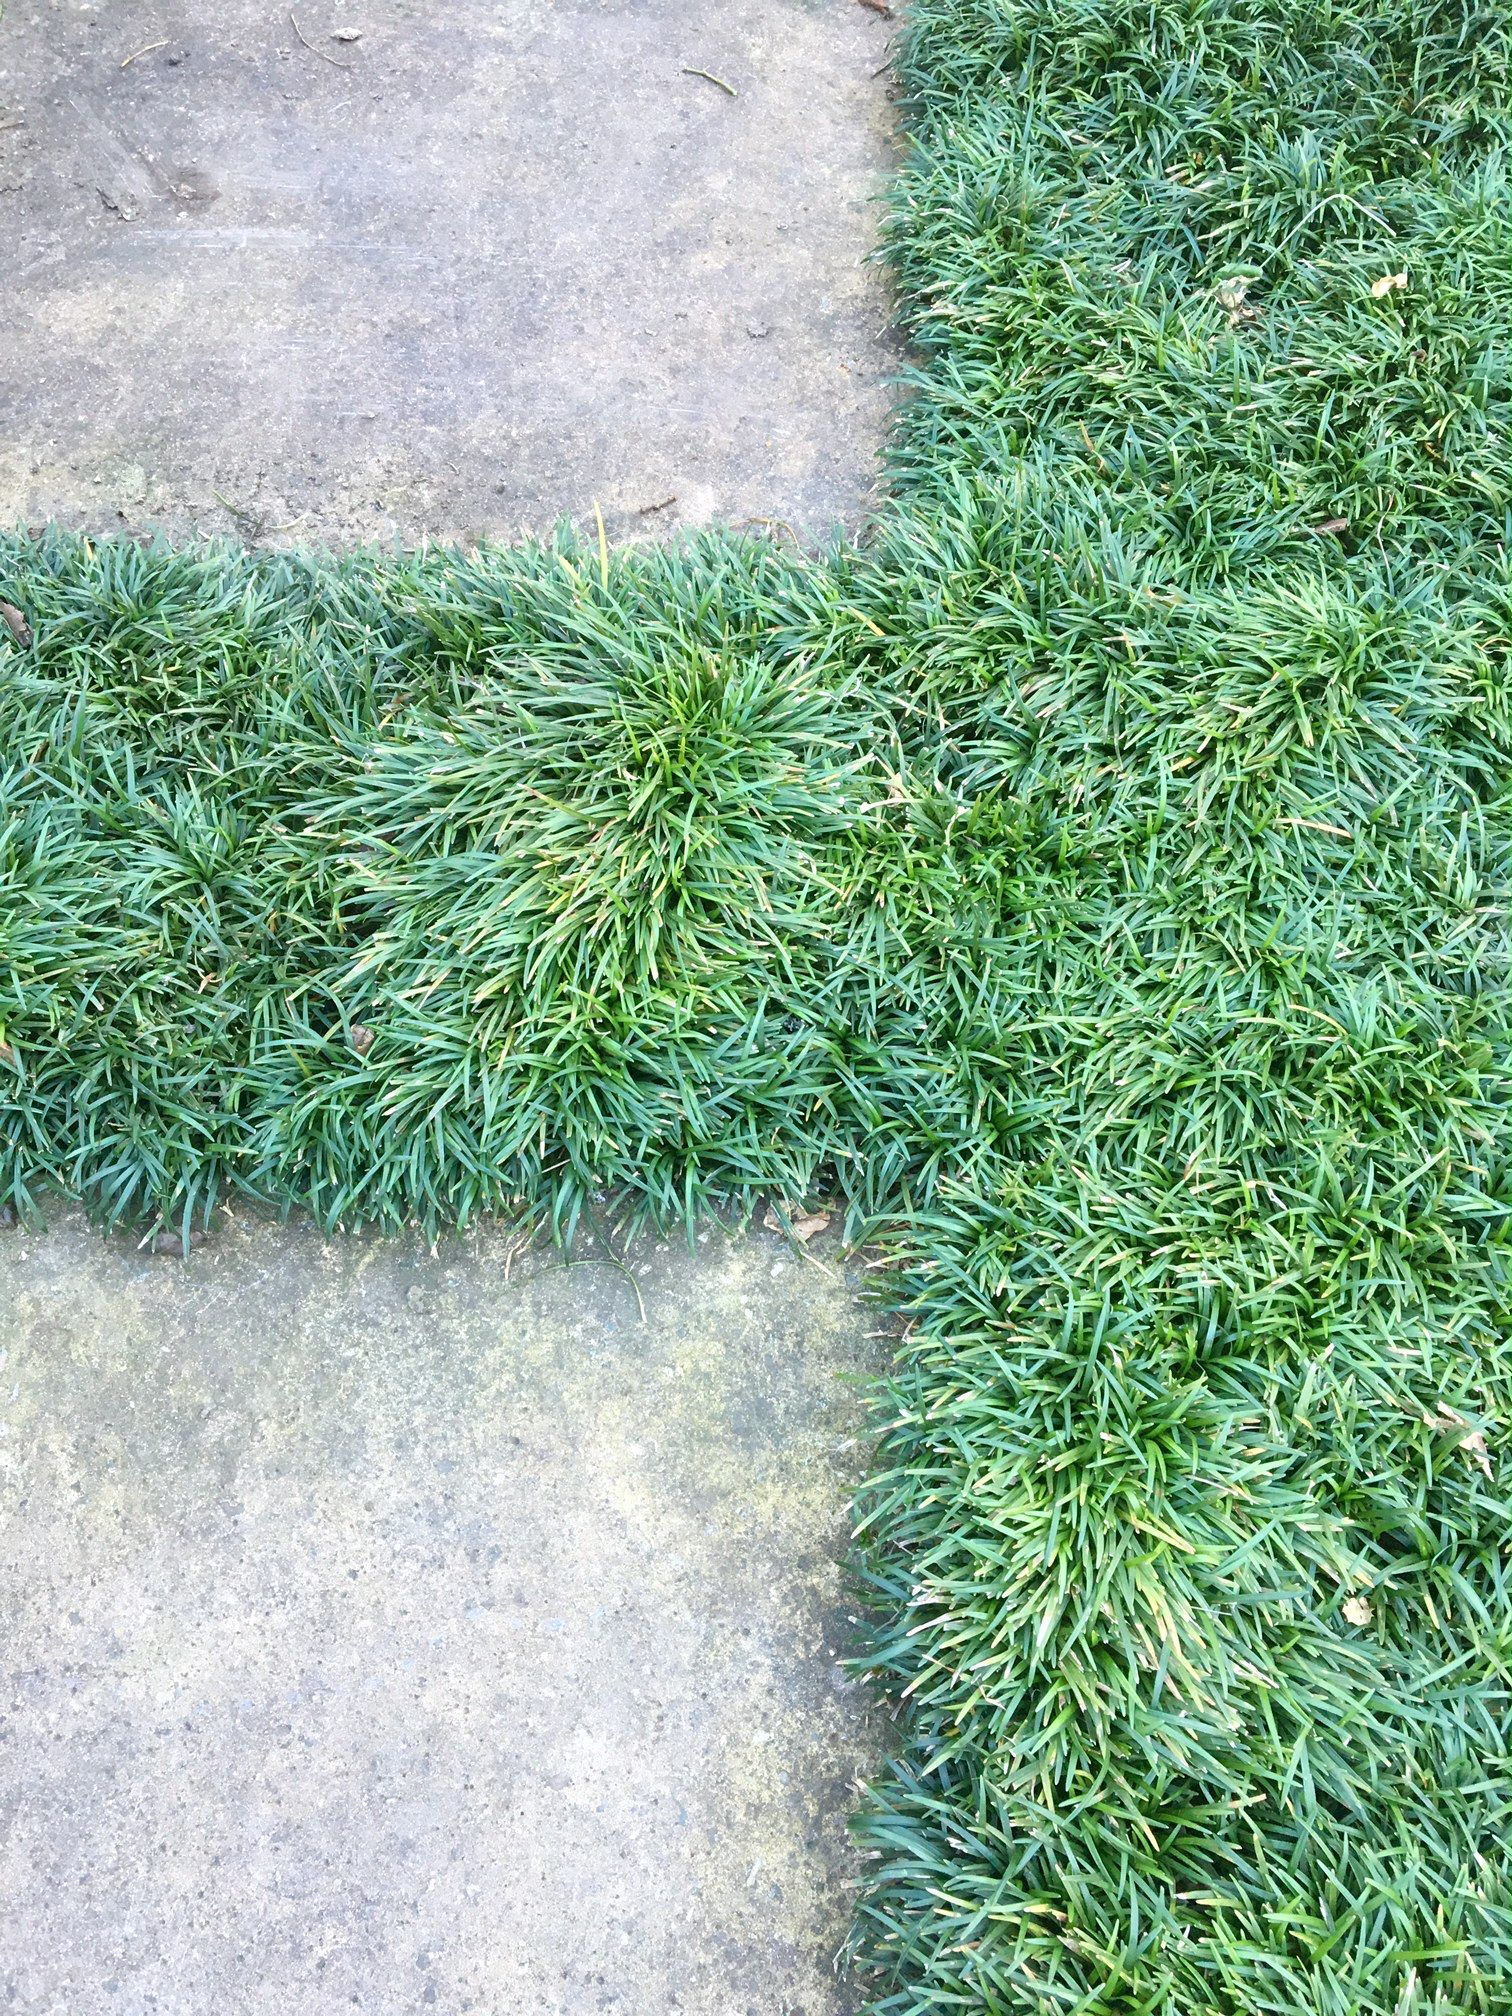 Hardscaping 101 Design Guide For Fences Height Styles: Hardscaping 101: Ground Covers To Plant Between Pavers